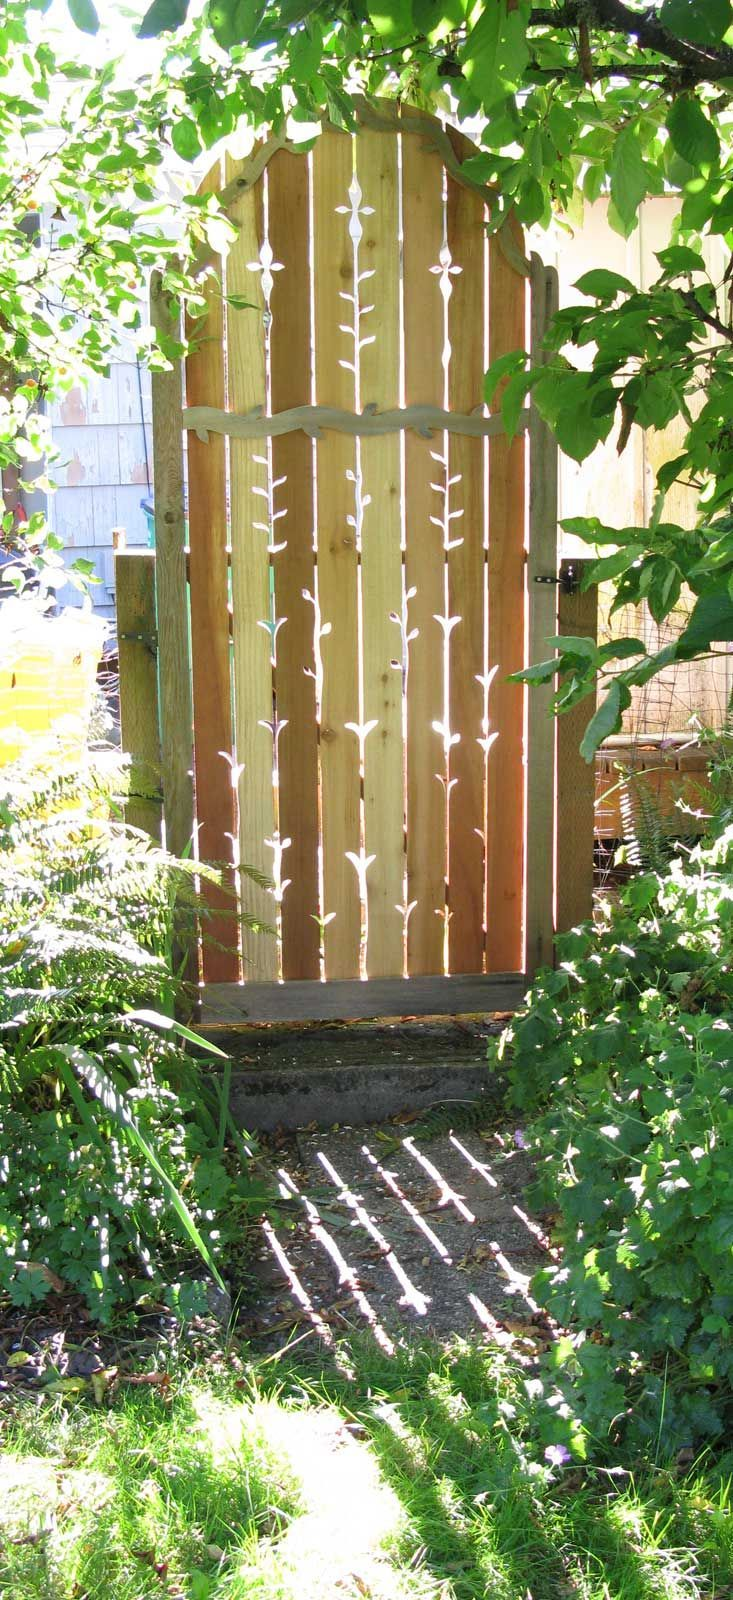 Leaf detailing on this gate need not be   expensive, but it gives the entire backyard area an extra touch of class and   artfulness. From Jane Hart Design in Portland, OR.